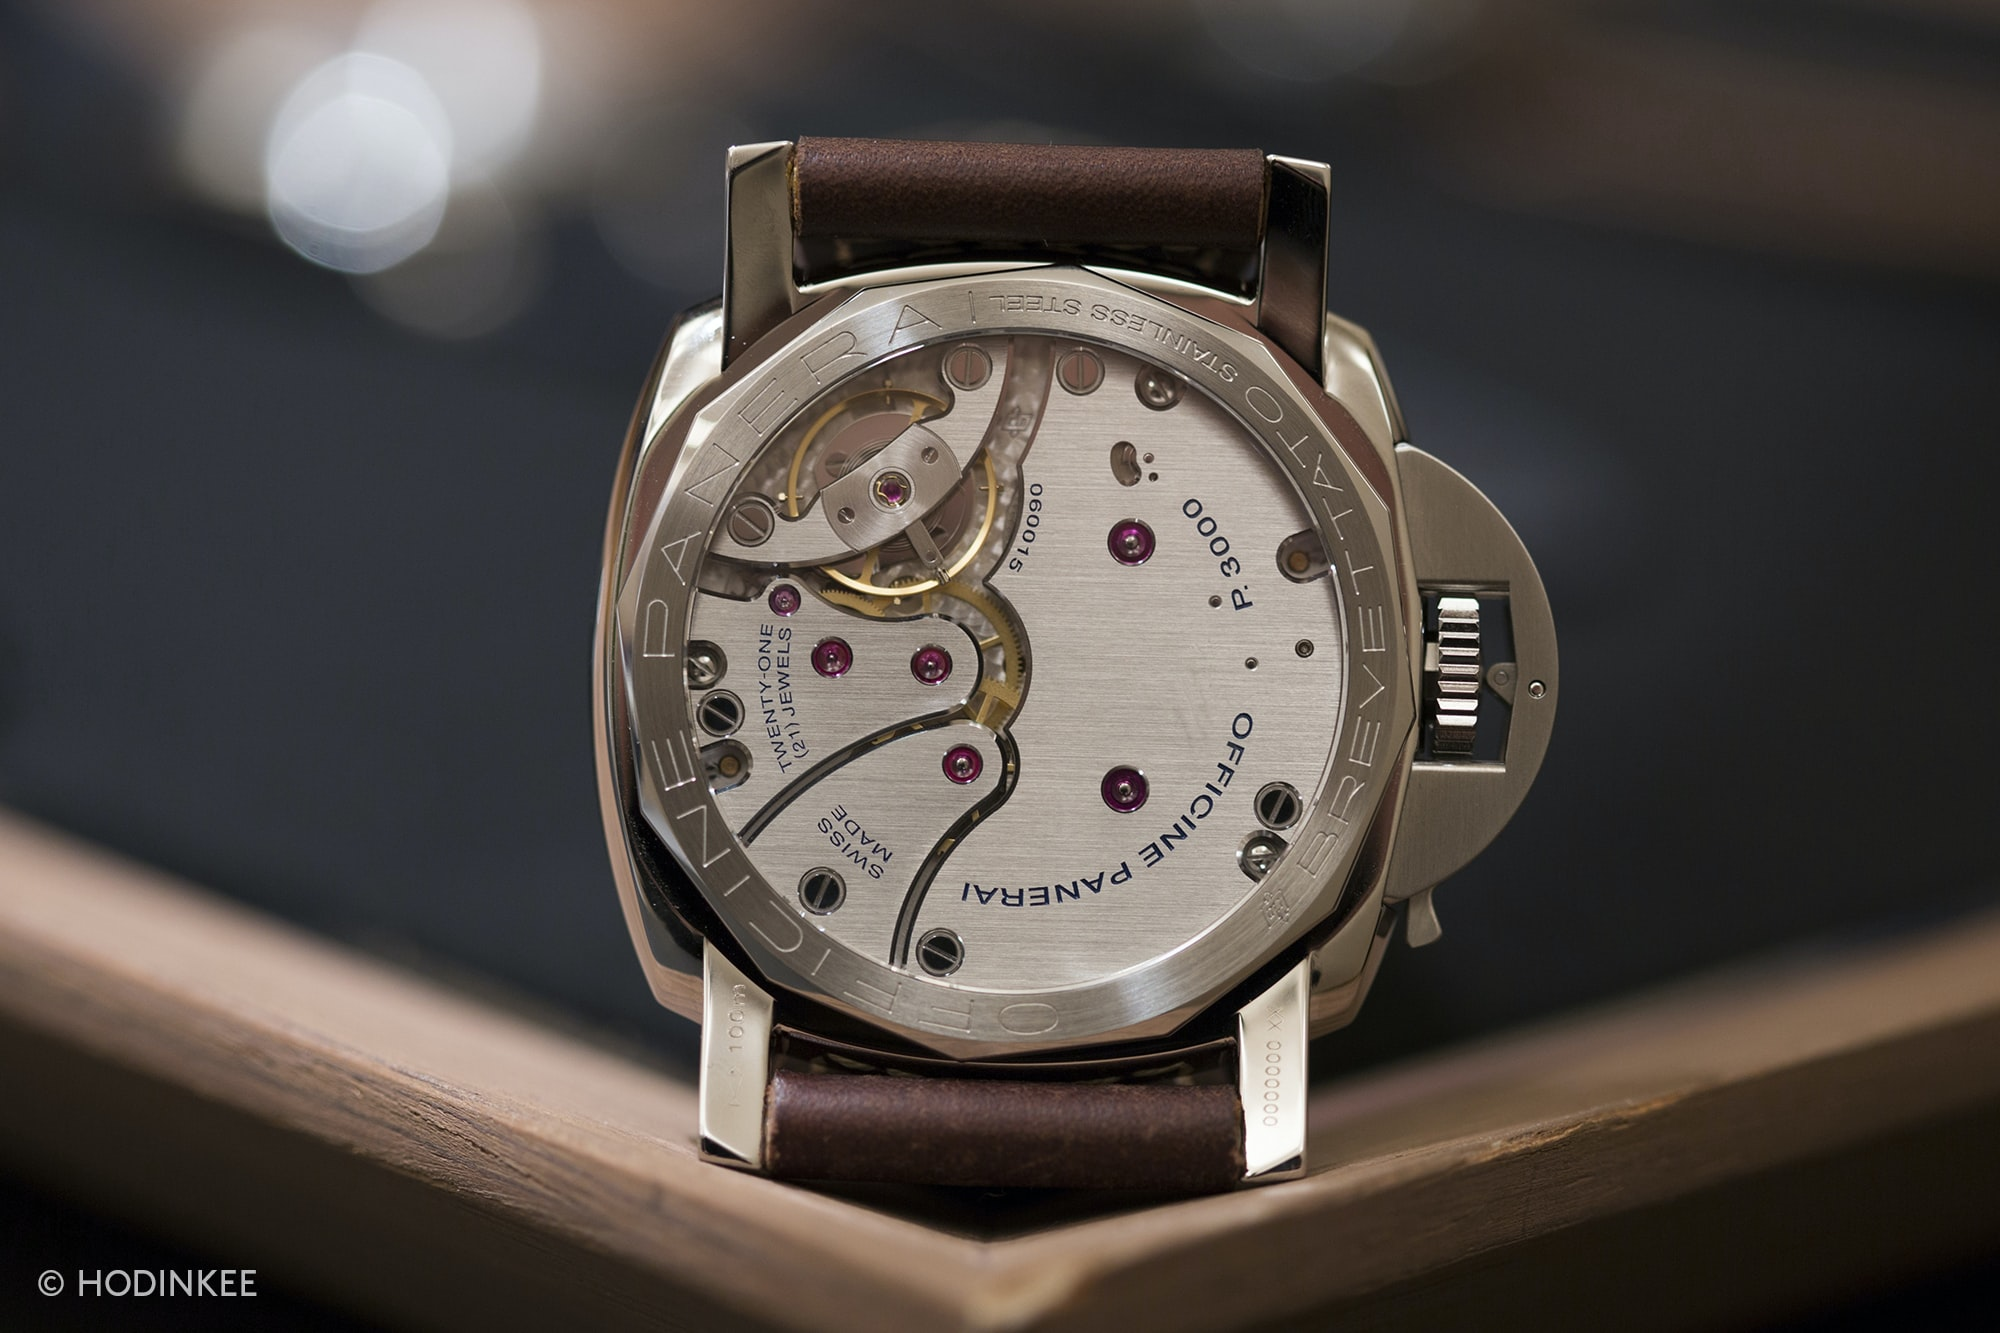 Hands-On: The Panerai Radiomir 1940 3 Days PAM 662 And Luminor 1950 PAM 663 Hands-On: The Panerai Radiomir 1940 3 Days PAM 662 And Luminor 1950 PAM 663 Panerai Luminor 1950 PAM 663 back 2